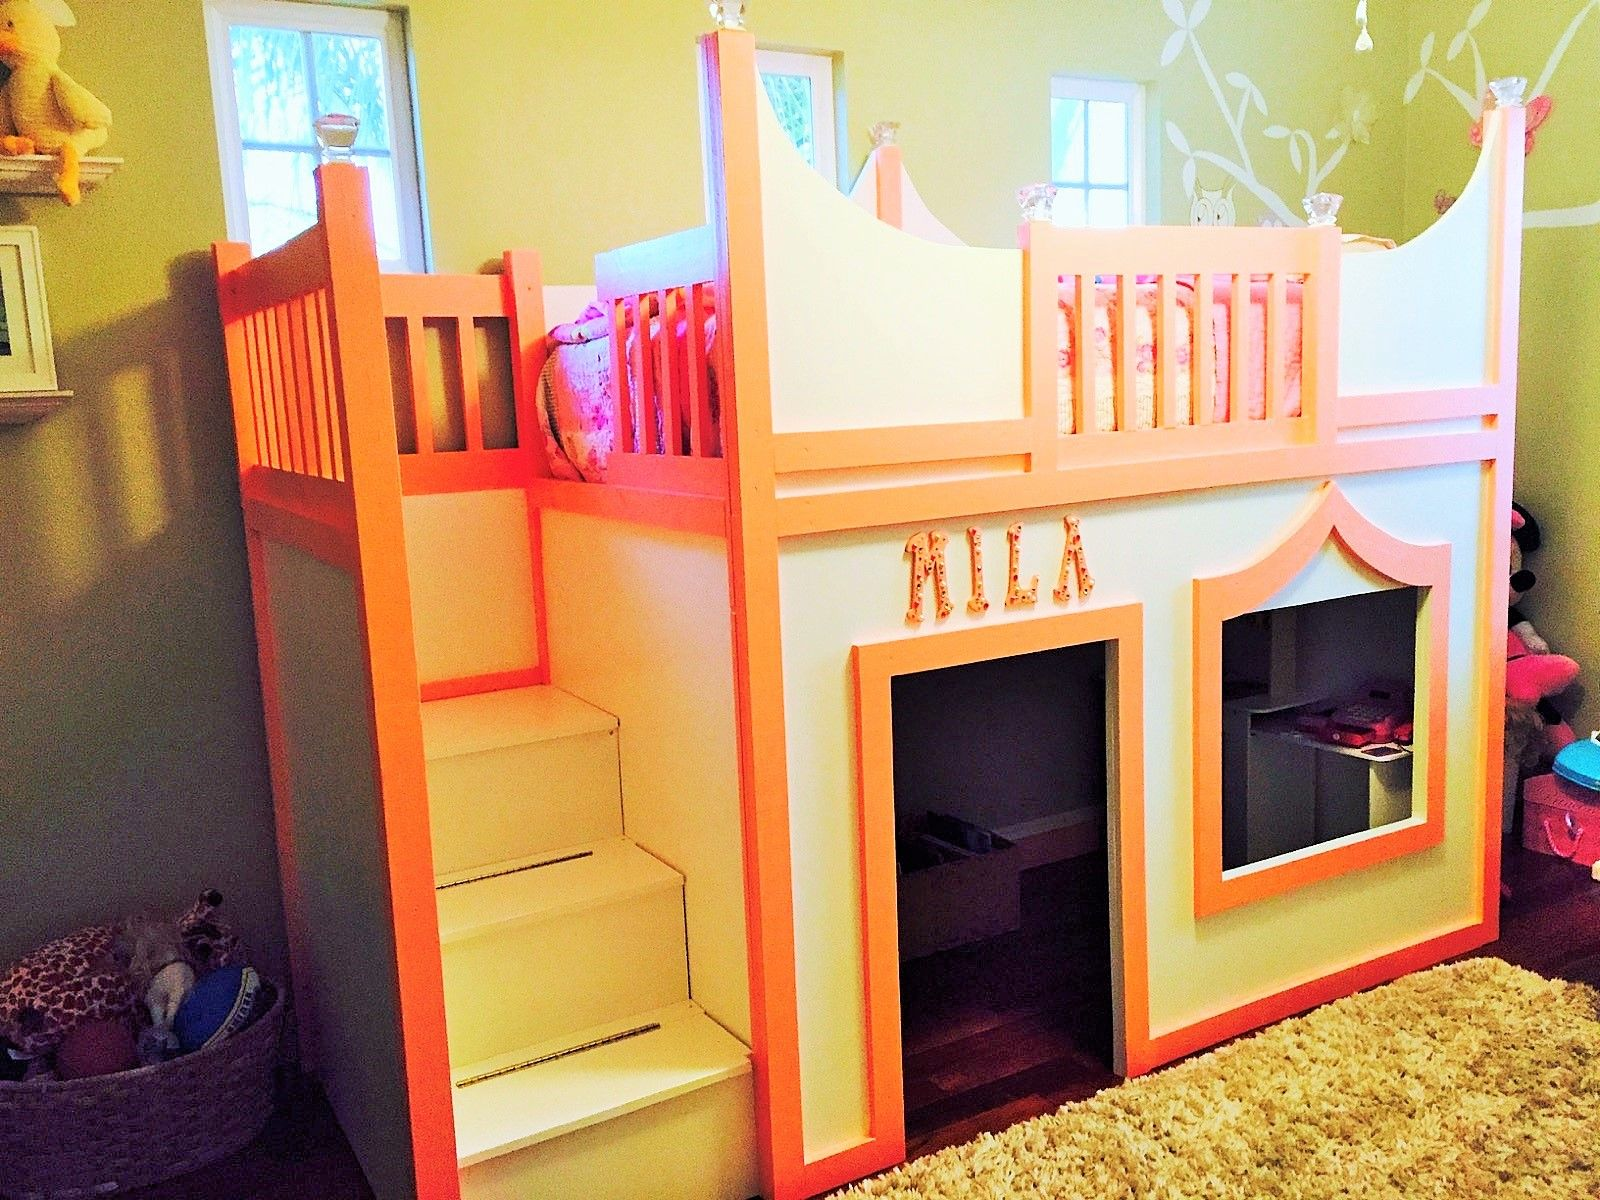 Princess playhouse loft bed with storage stairs and additional storage accessed from playhouse